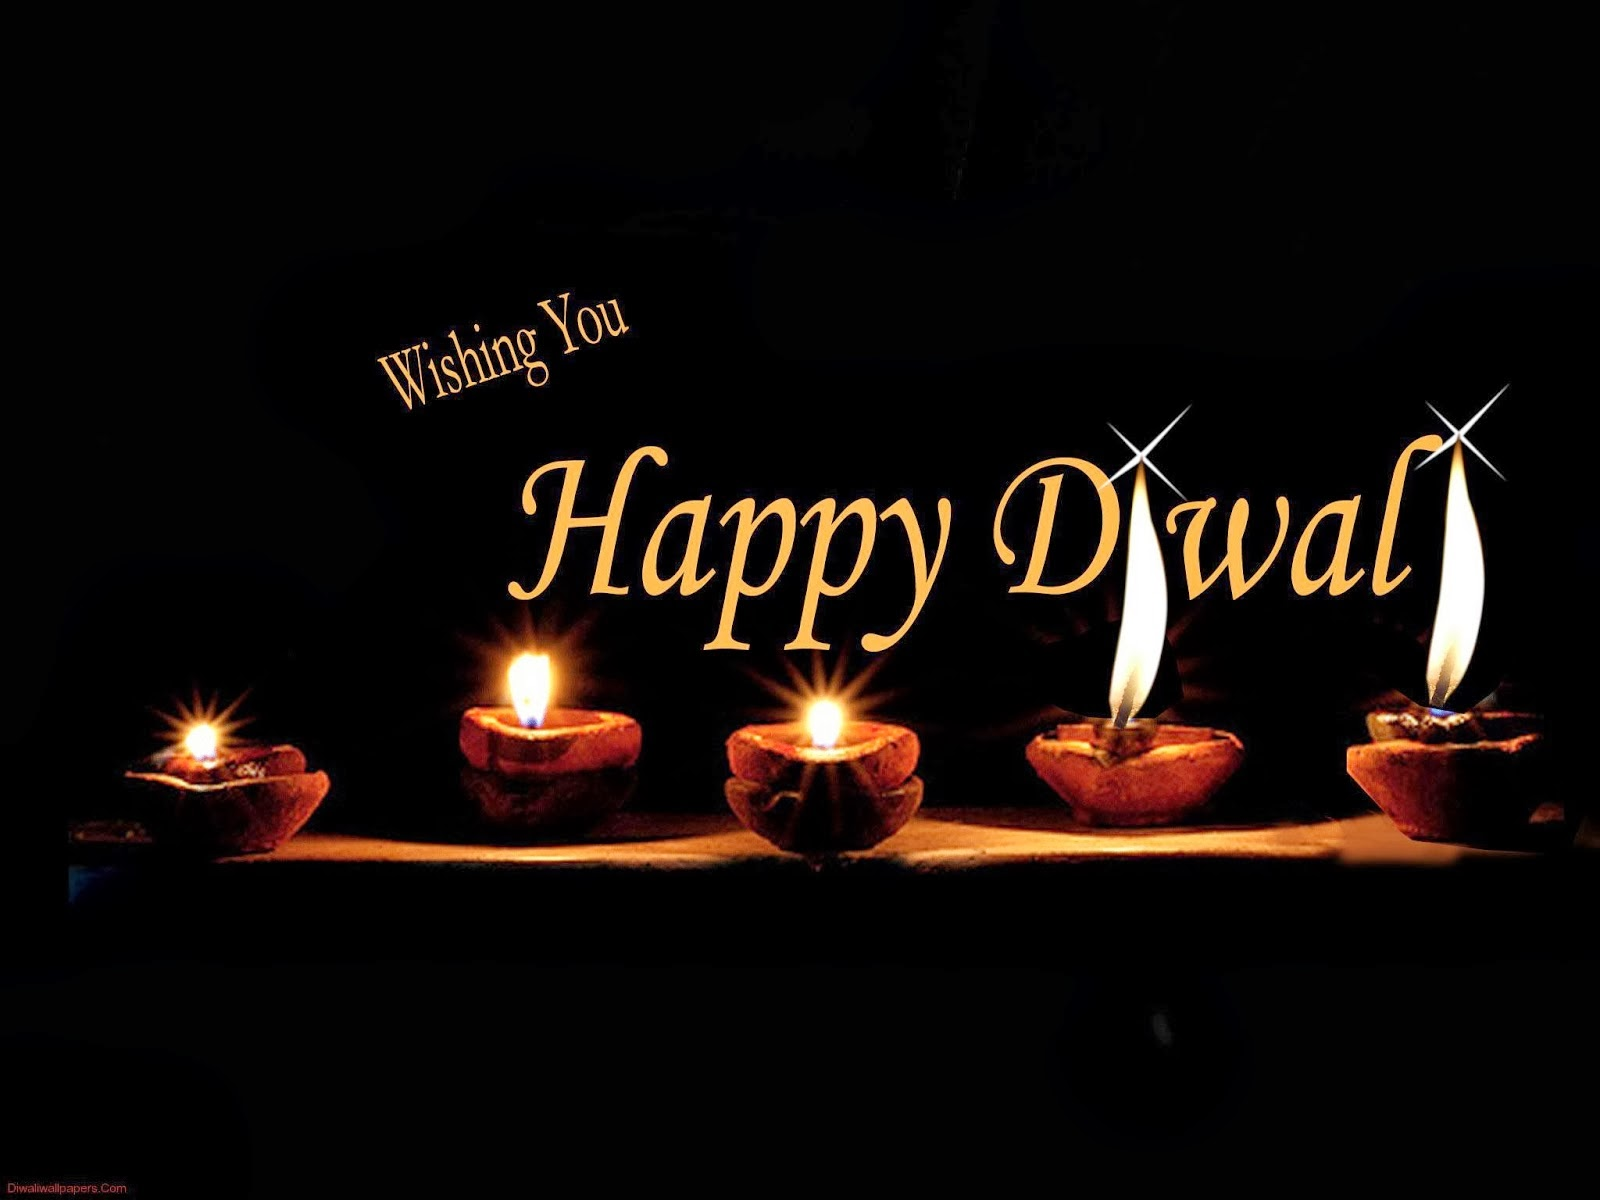 Happy Diwali And Dhanteras Wallpapers: Happy Dilwali 2014 Wallpapers: Happy Diwali 2014 Wallpapers